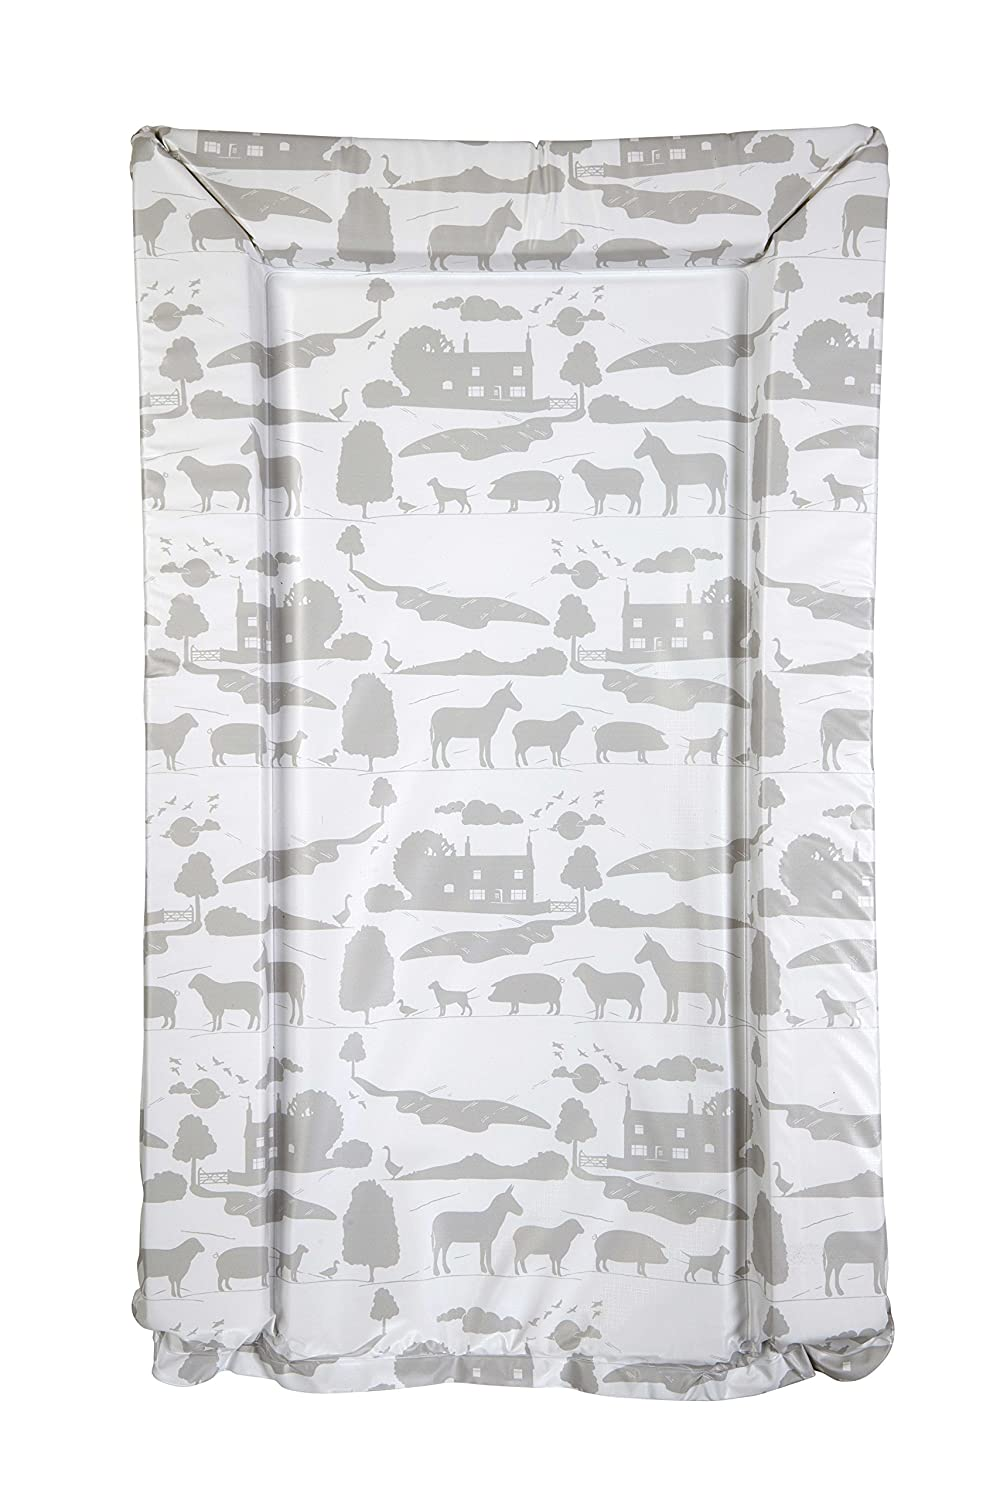 East Coast Nursery Changing Mat, Grey, On The Farm, Pack of 2